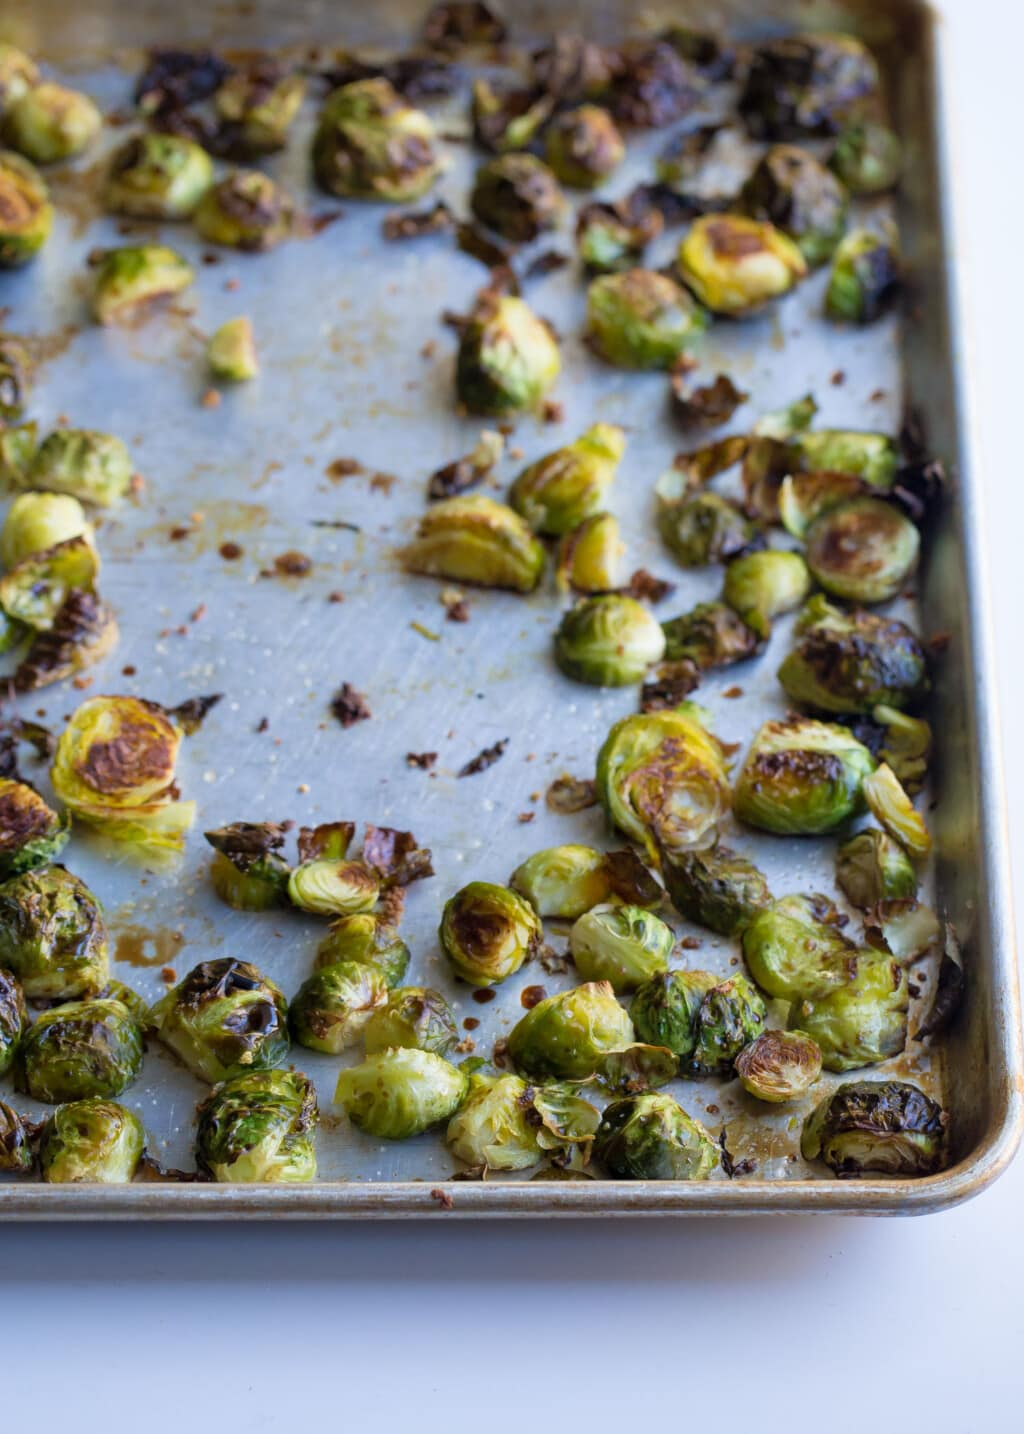 Sheet Pan of balsamic roasted brussels sprouts.